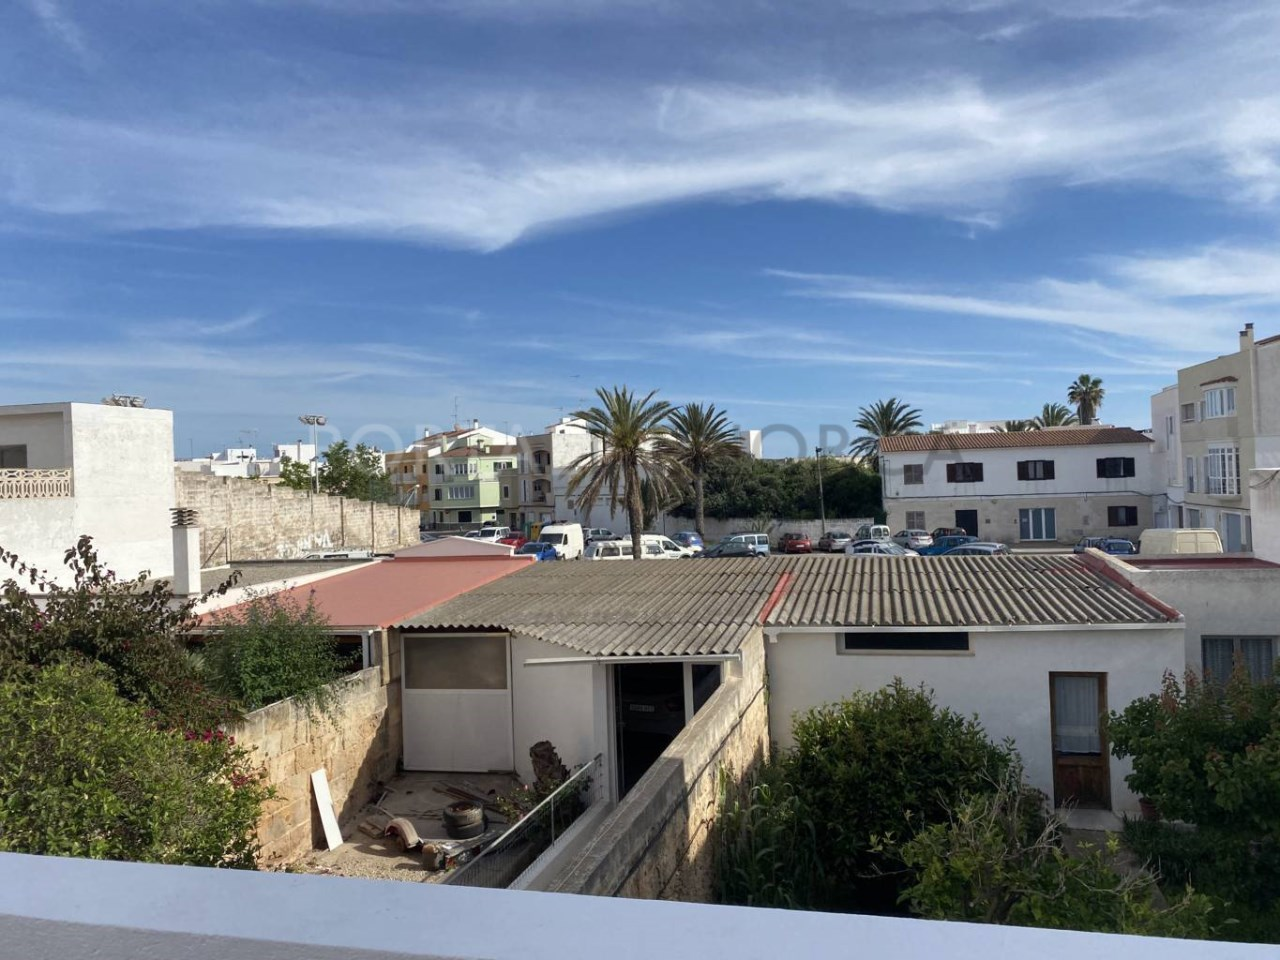 House for sale downtown area of ciutadella